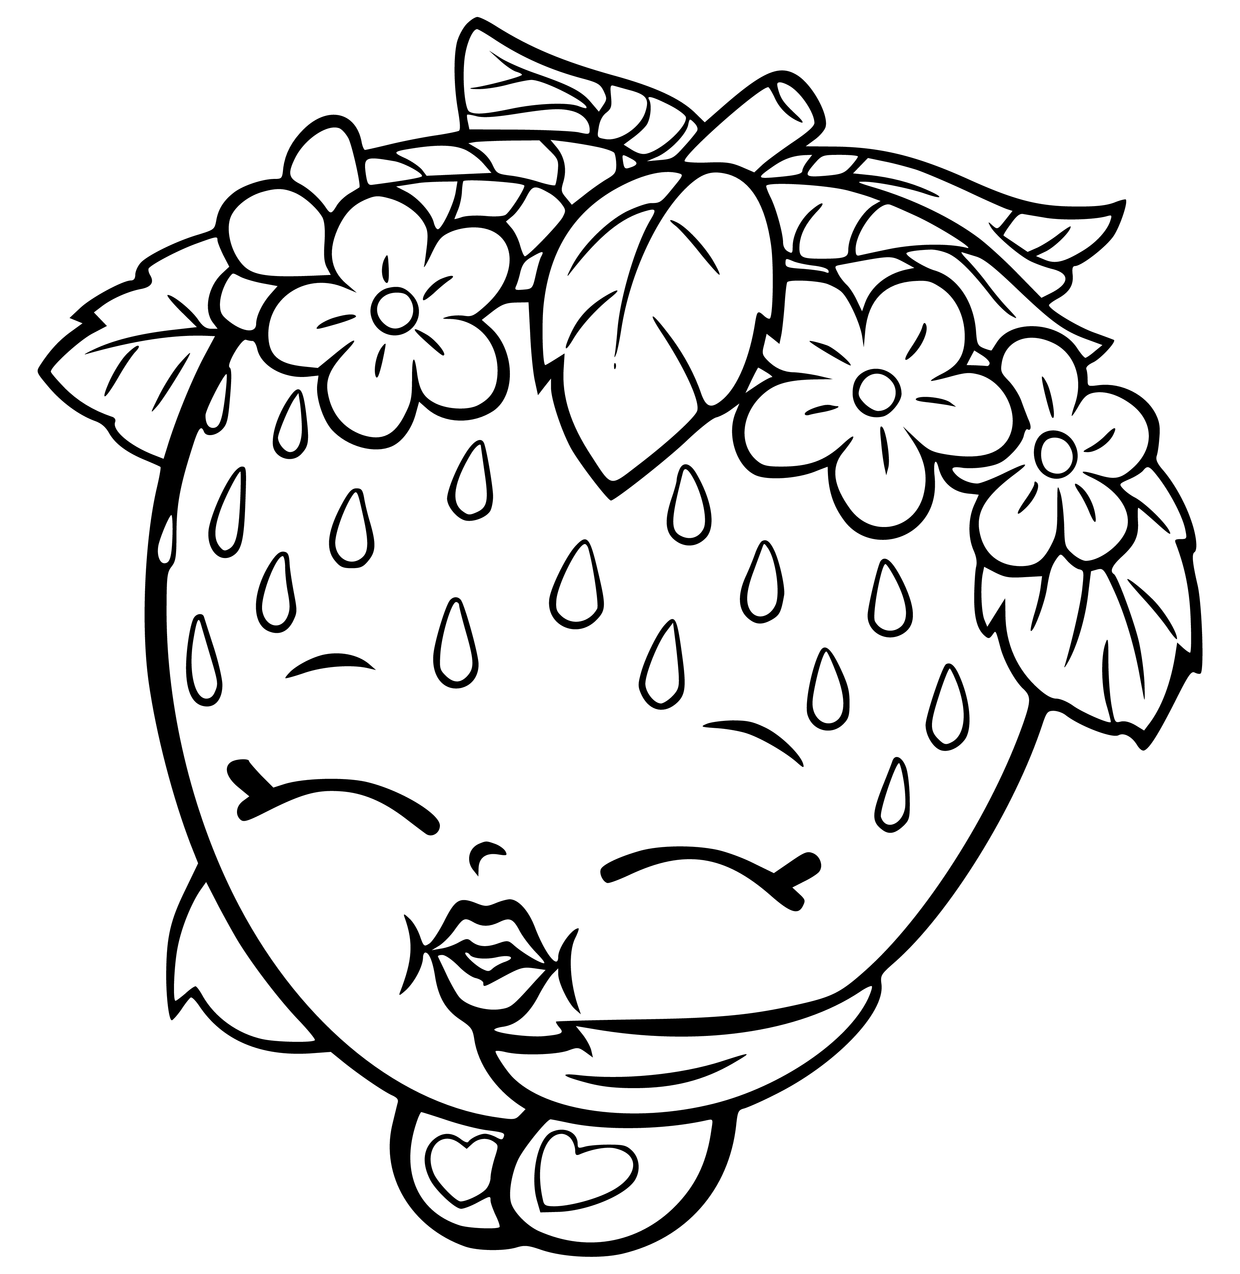 coloring worksheets shopkins shopkins coloring pages best coloring pages for kids shopkins worksheets coloring